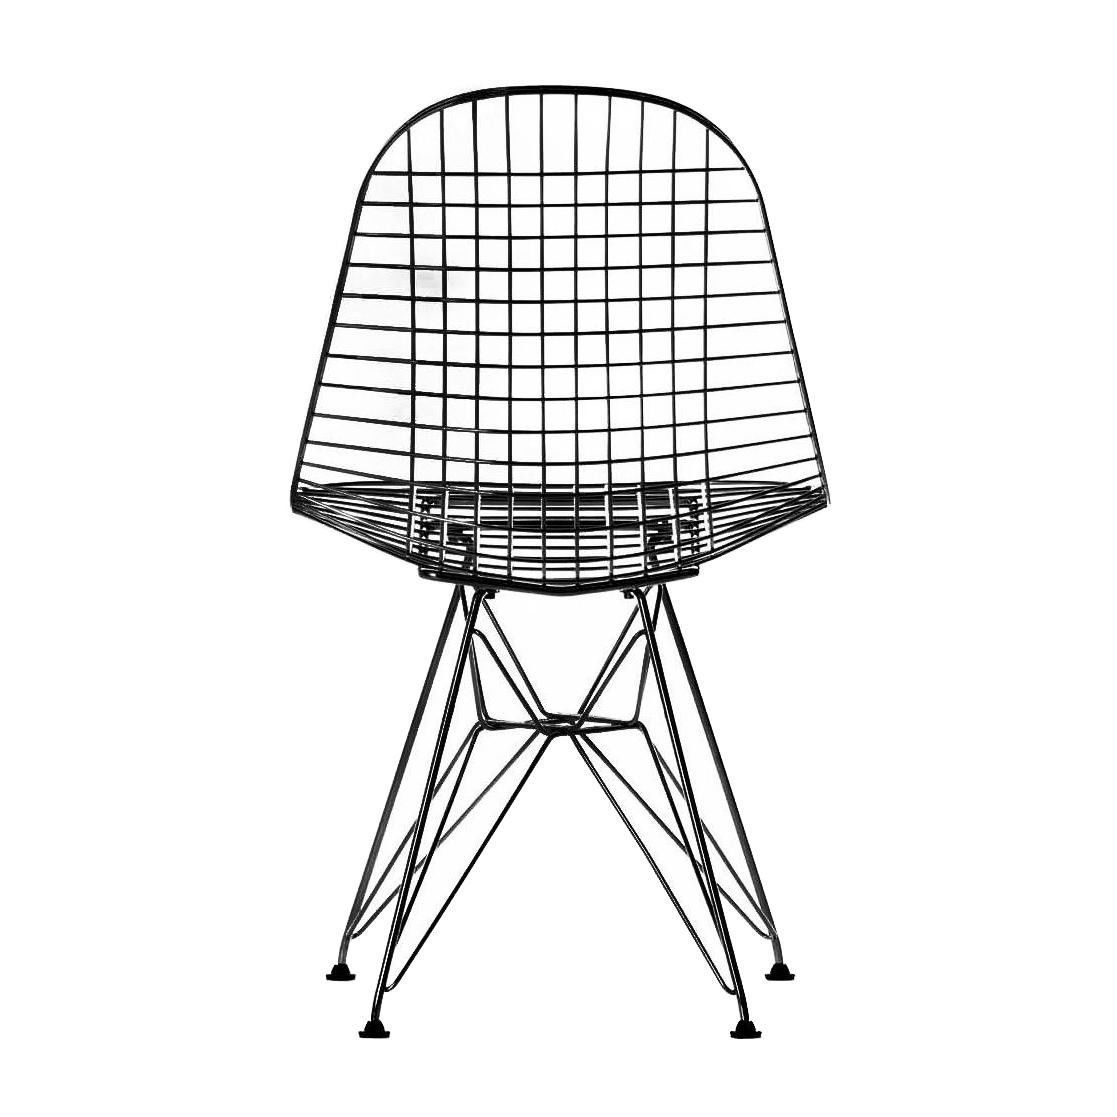 Eames wire chair dkr chaise 42cm vitra for Chaise eames dkr